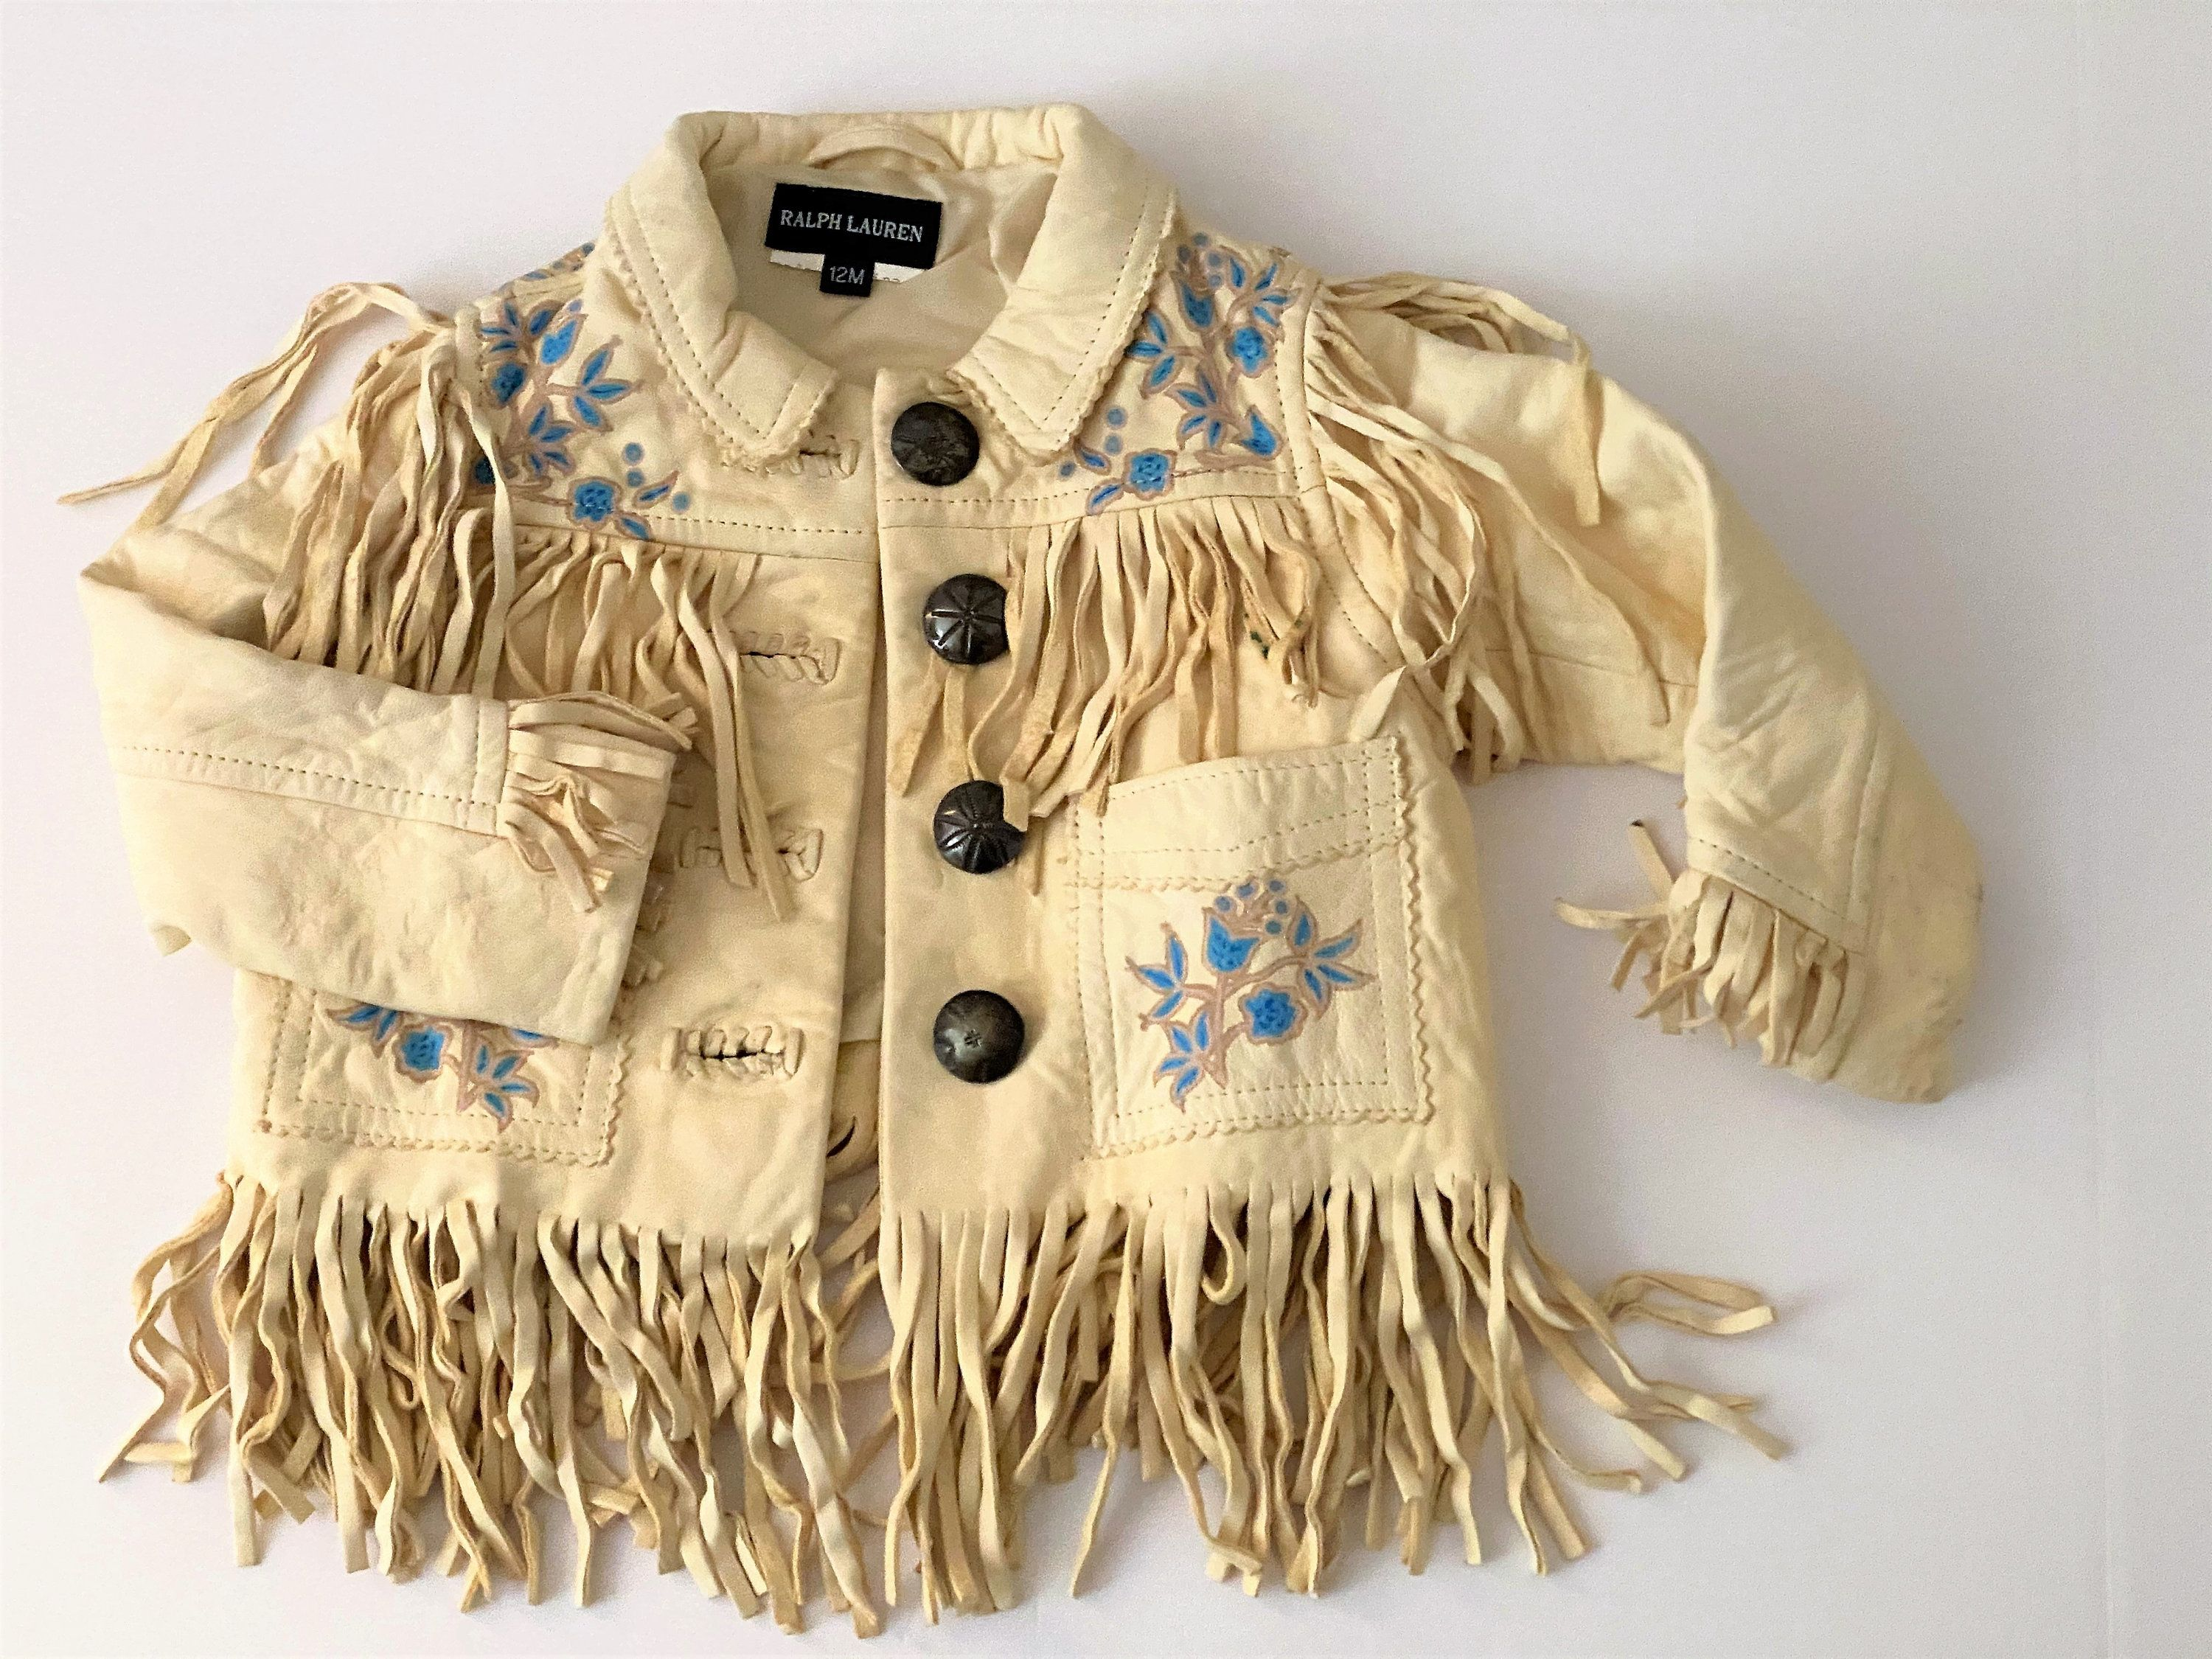 Ralph Lauren Designer Vintage Fashionista Baby Leather Fringe Jacket Sz 12 Month Western Cowboy Cowgirl In 2020 Fringe Leather Jacket Fringe Jacket Leather Fringe